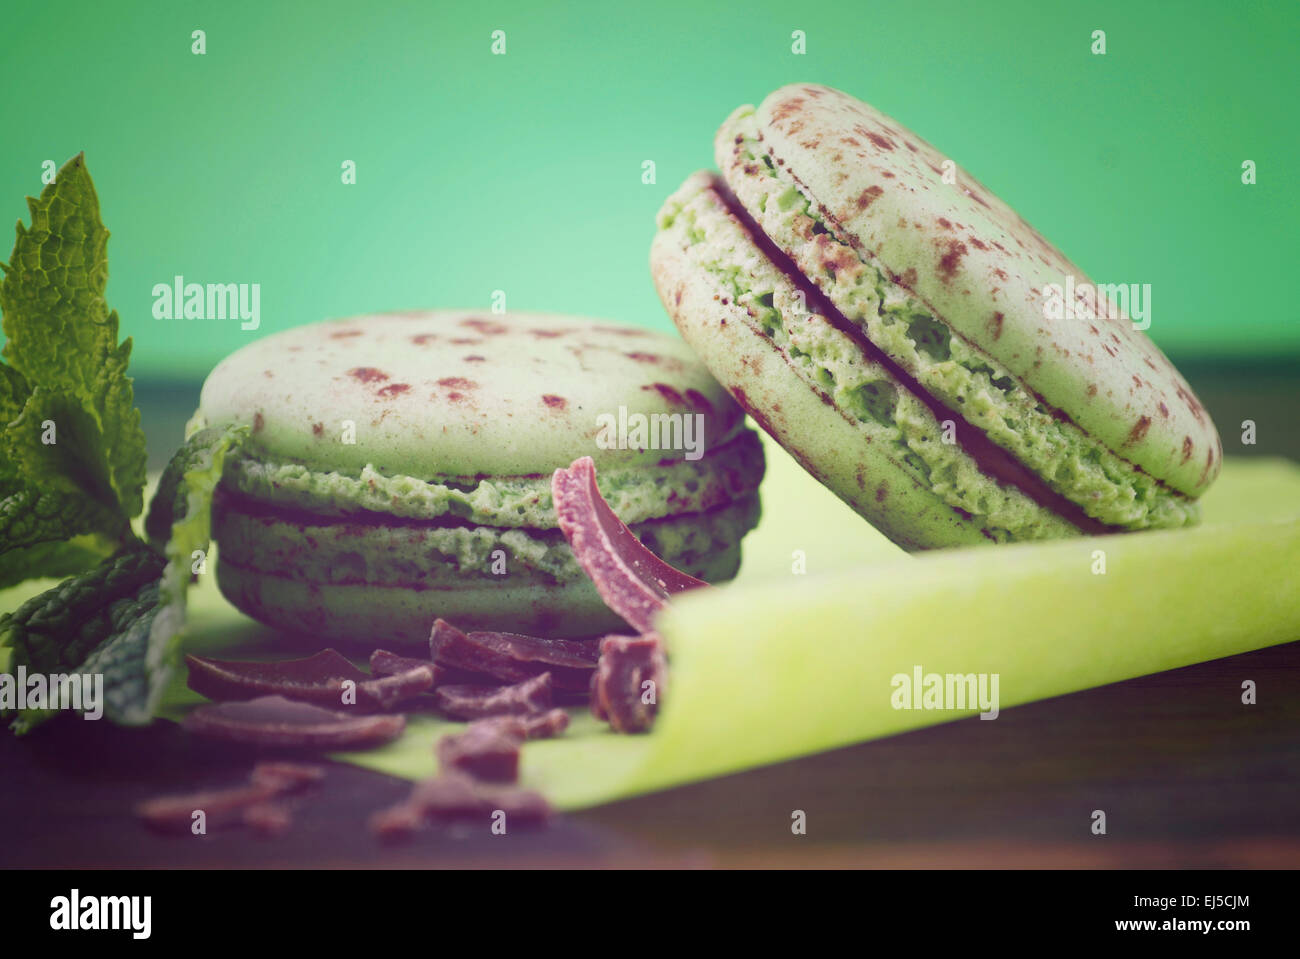 Chocolate and mint flavor macaroons on dark wood table and green background, with applied retro vintage style filters. - Stock Image